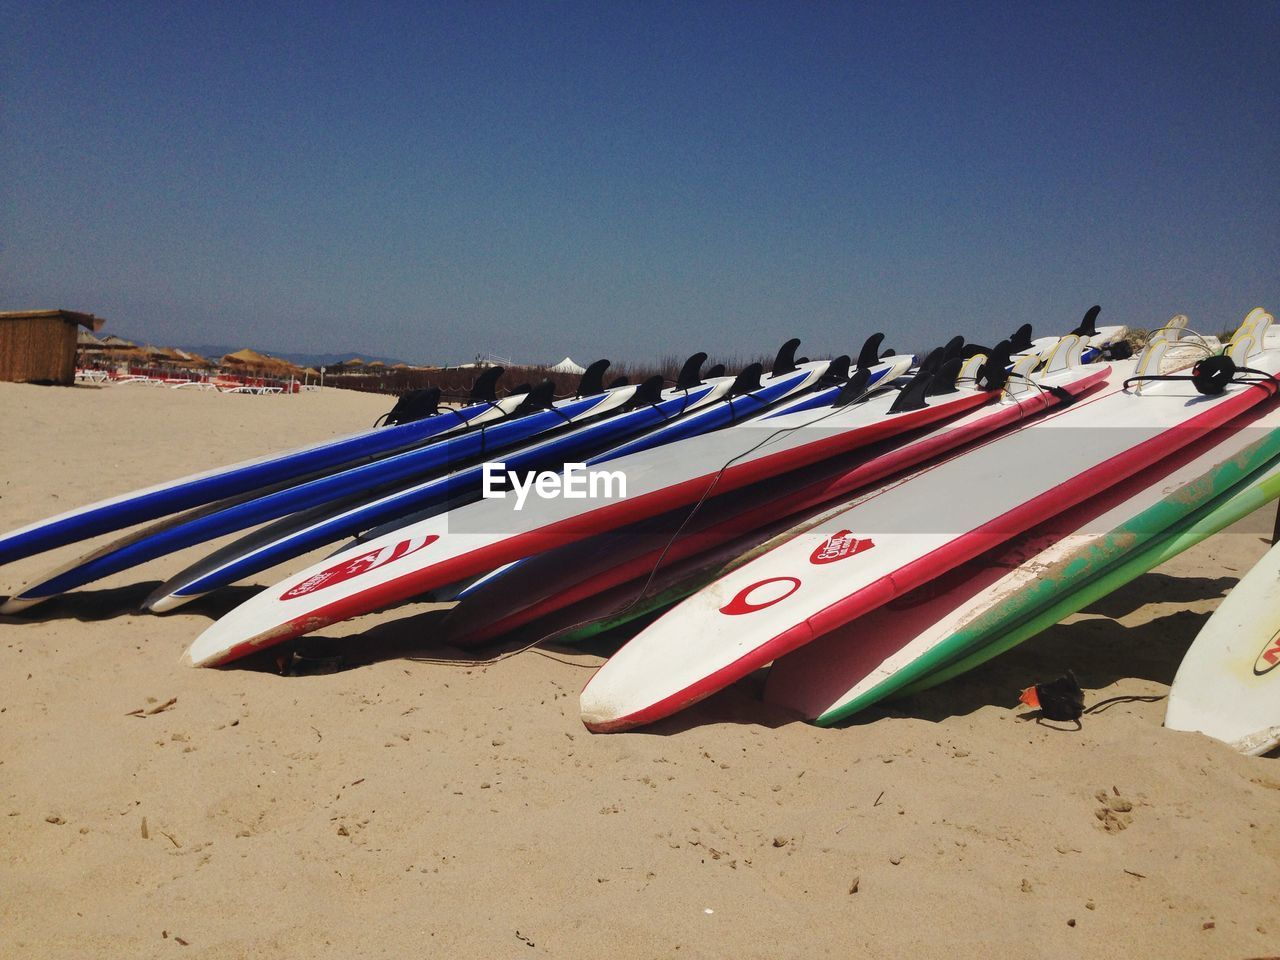 sand, beach, in a row, day, outdoors, no people, mode of transport, nautical vessel, multi colored, clear sky, sky, nature